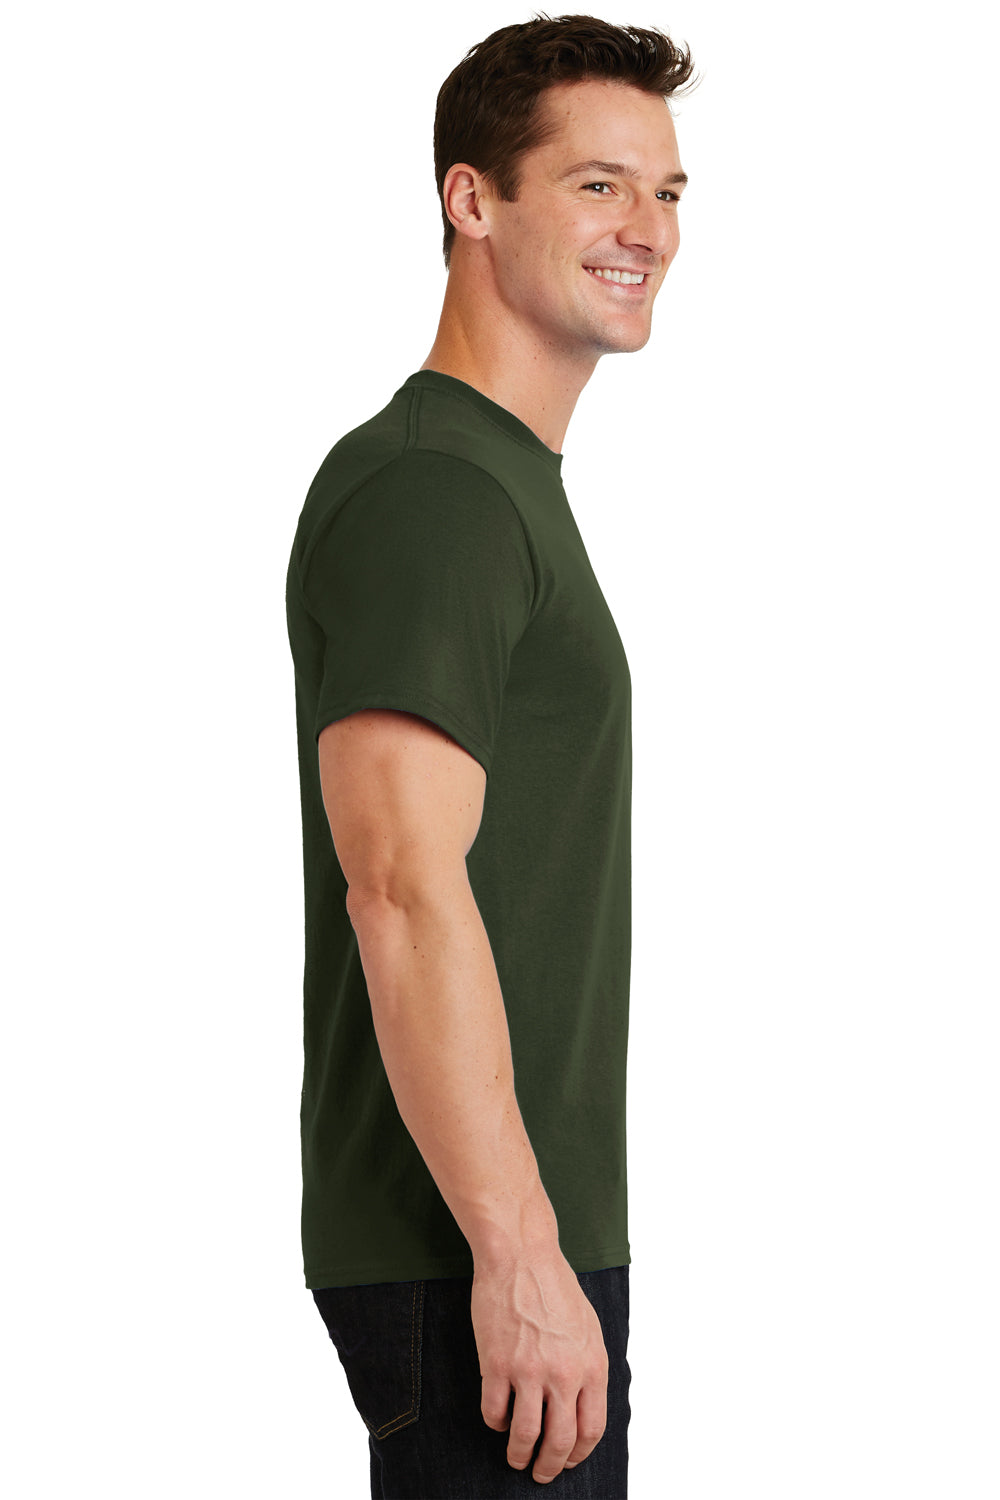 Port & Company PC61 Mens Essential Short Sleeve Crewneck T-Shirt Olive Green Side